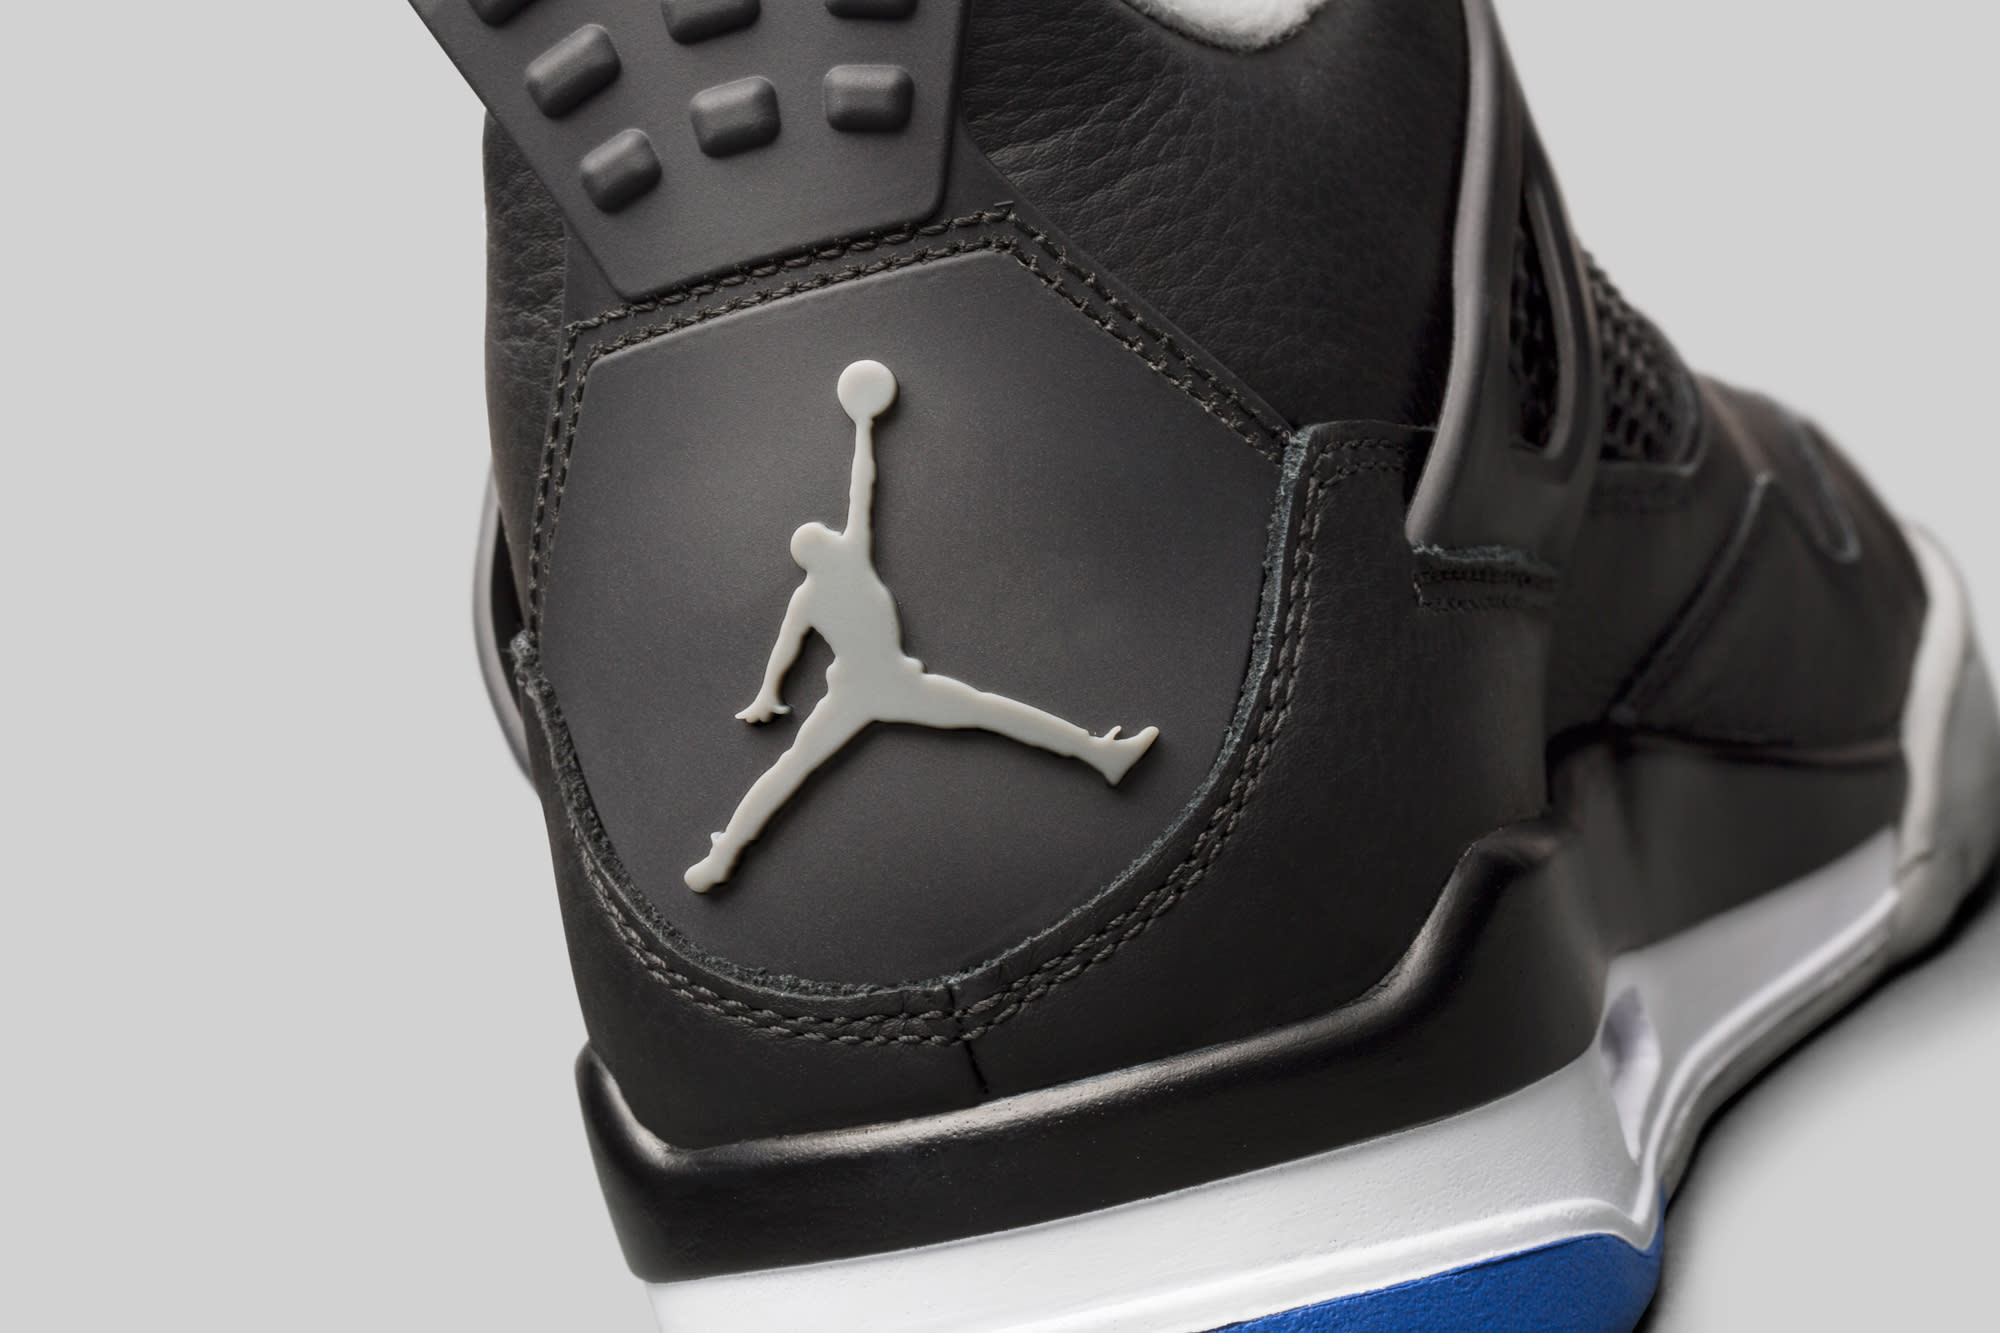 Air Jordan 4 Motorsports Alternate Heel